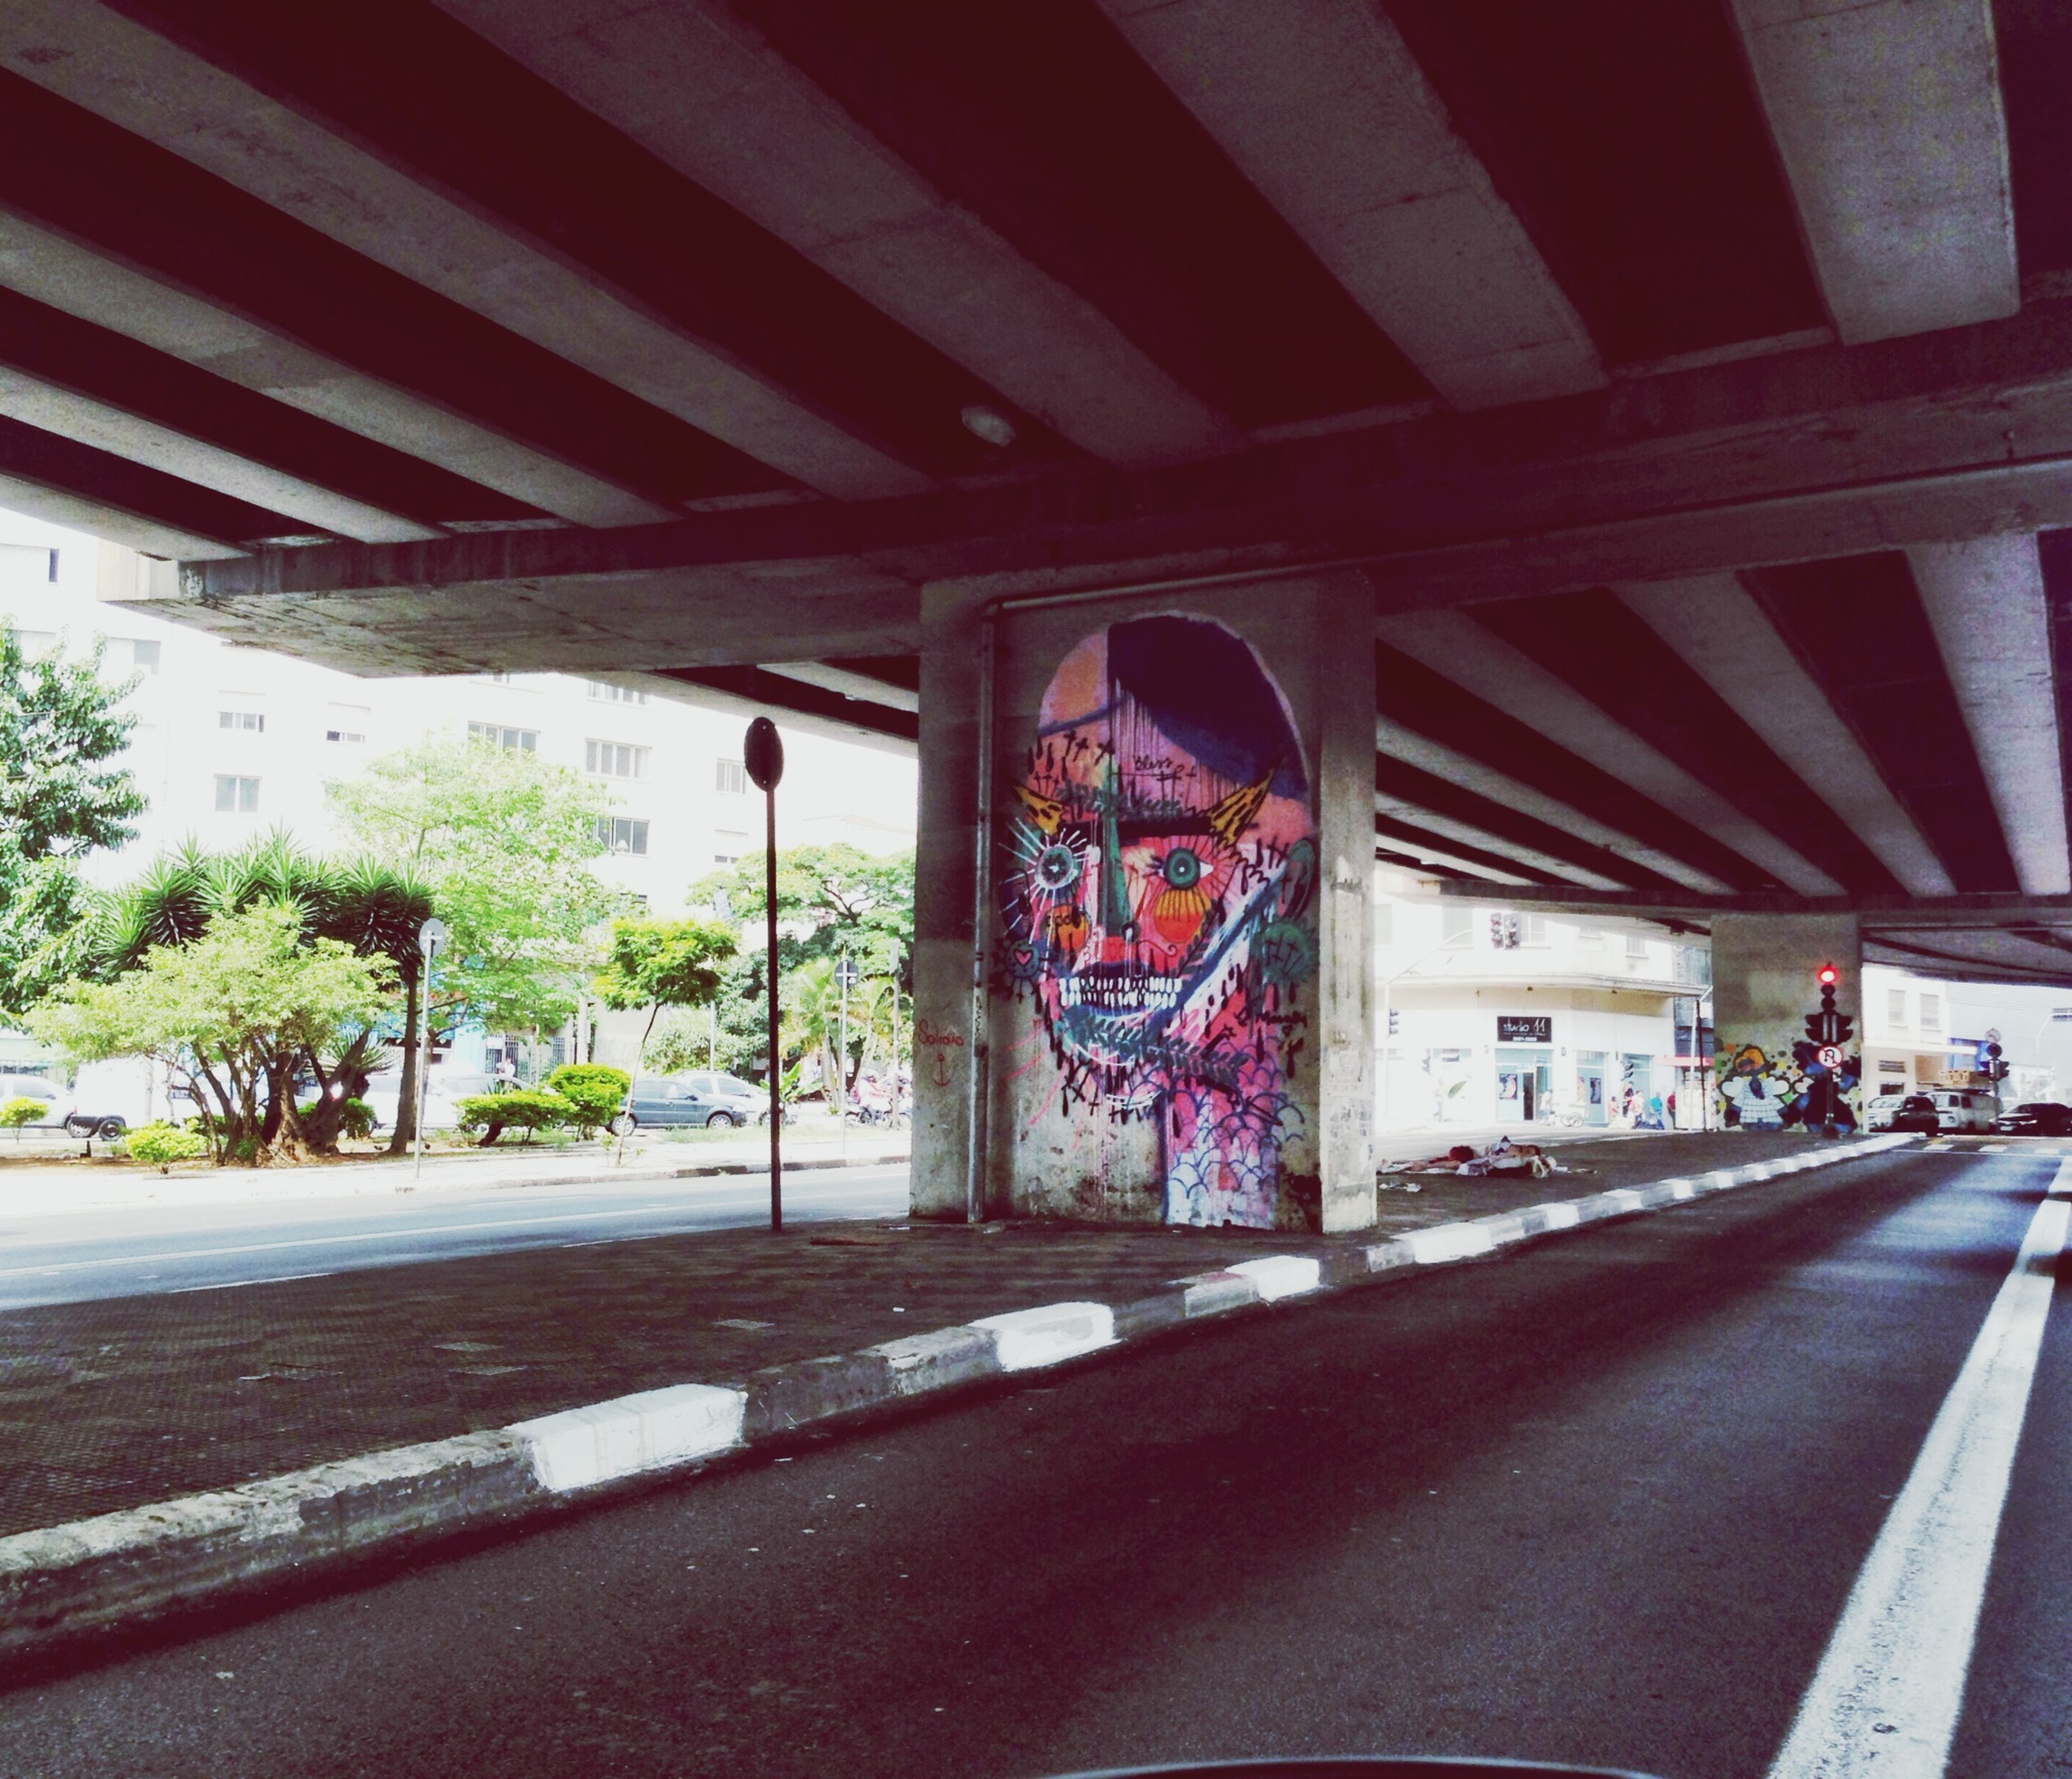 architecture, built structure, road, street, building exterior, graffiti, transportation, road marking, art, text, city, art and craft, creativity, car, incidental people, day, the way forward, wall - building feature, outdoors, sidewalk